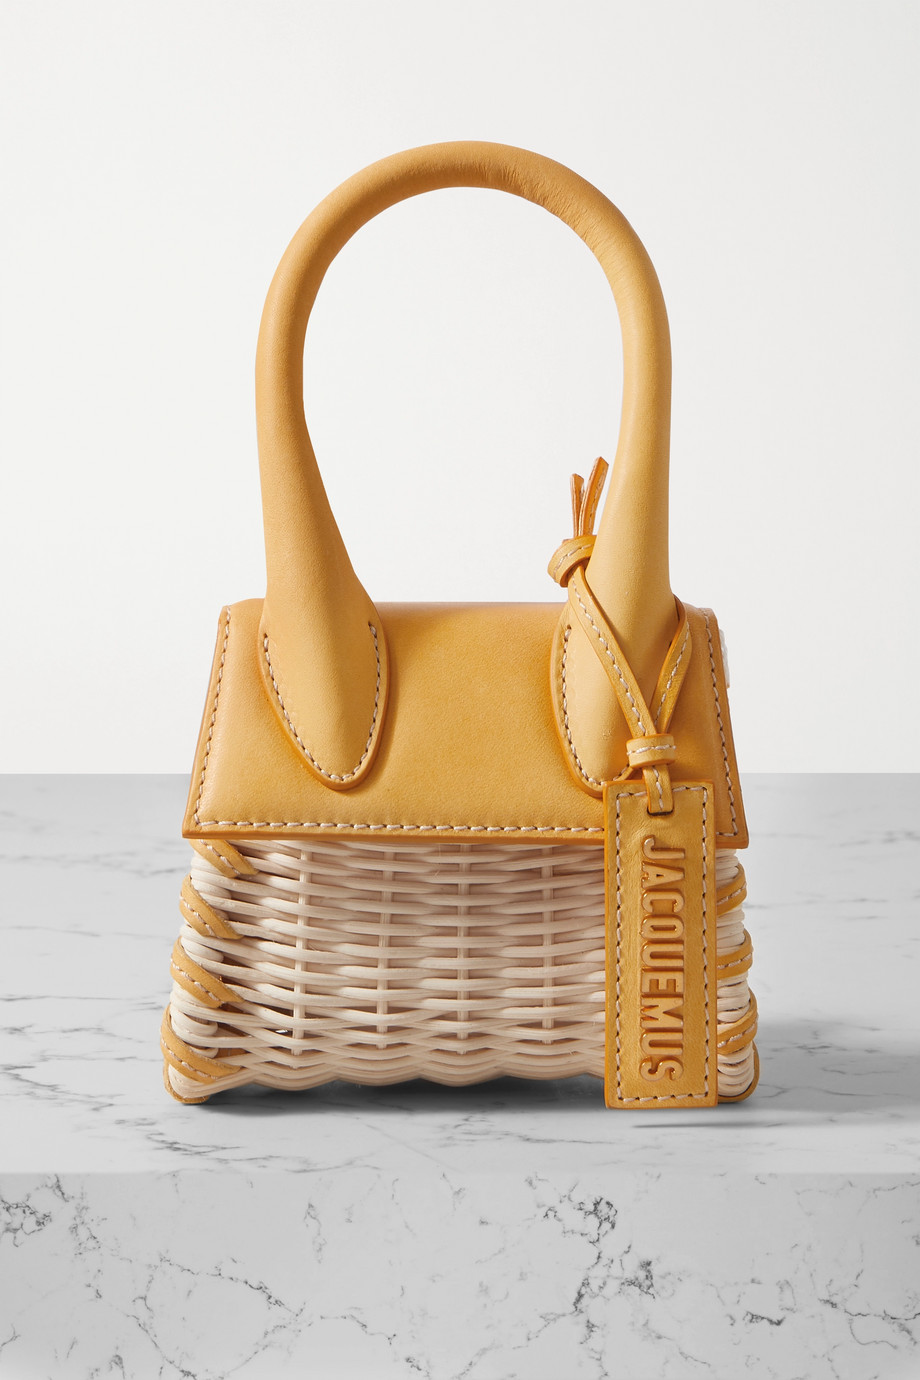 Jacquemus Le Chiquito leather-trimmed straw tote